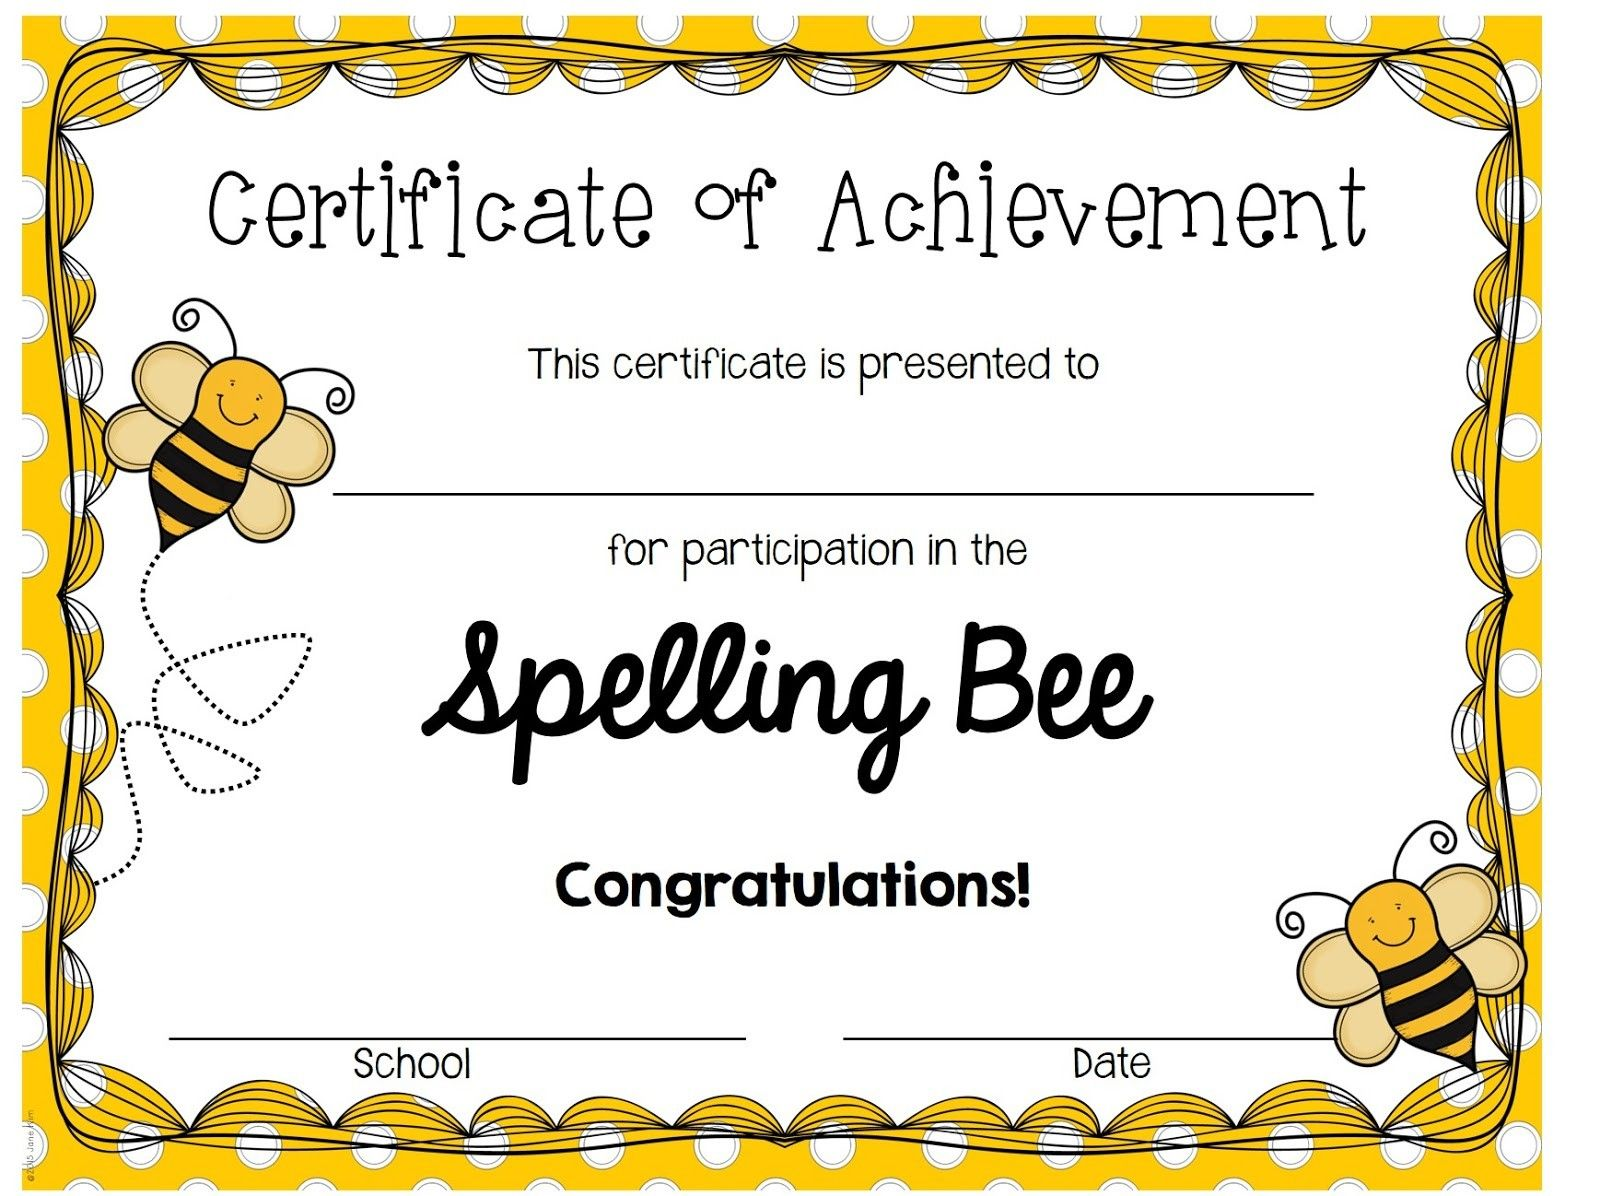 Pin by Cassandra Sampson on Spelling Bee | Pinterest | English ...